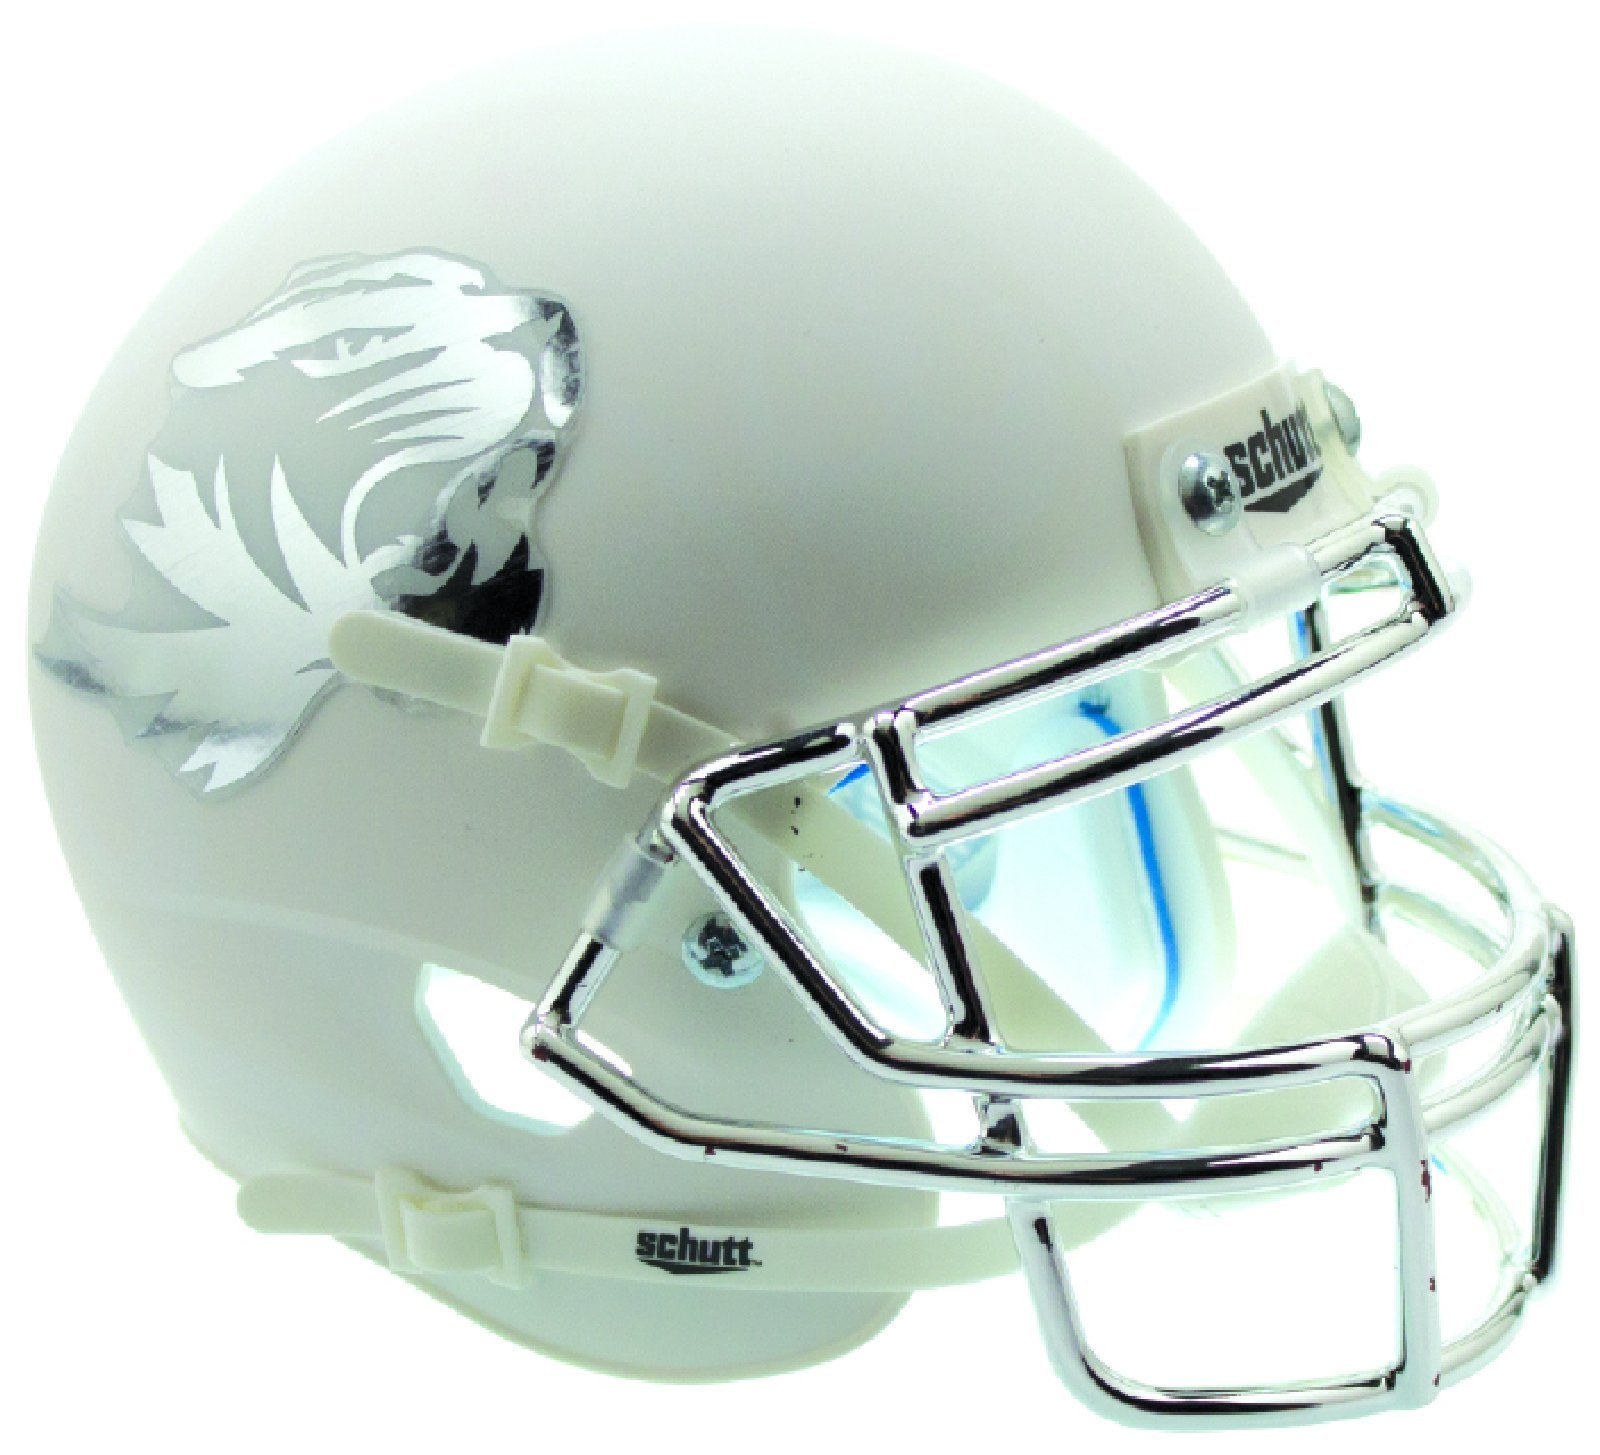 Schutt NCAA Missouri Tigers On-Field Authentic XP Football Helmet, Matte White Alt. 6 by Schutt (Image #1)